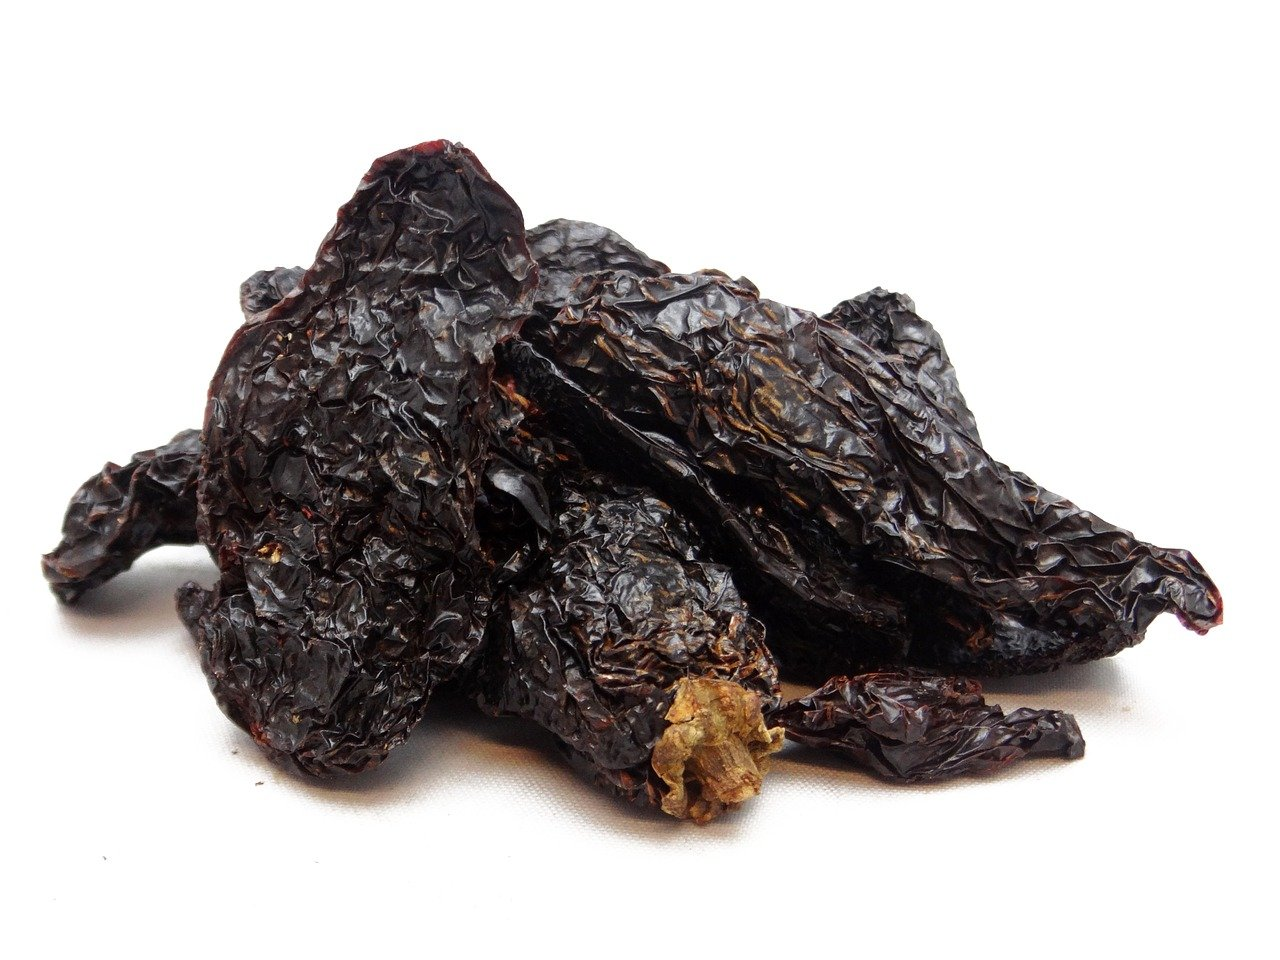 chipotle mature red jalapeno smoked and dried